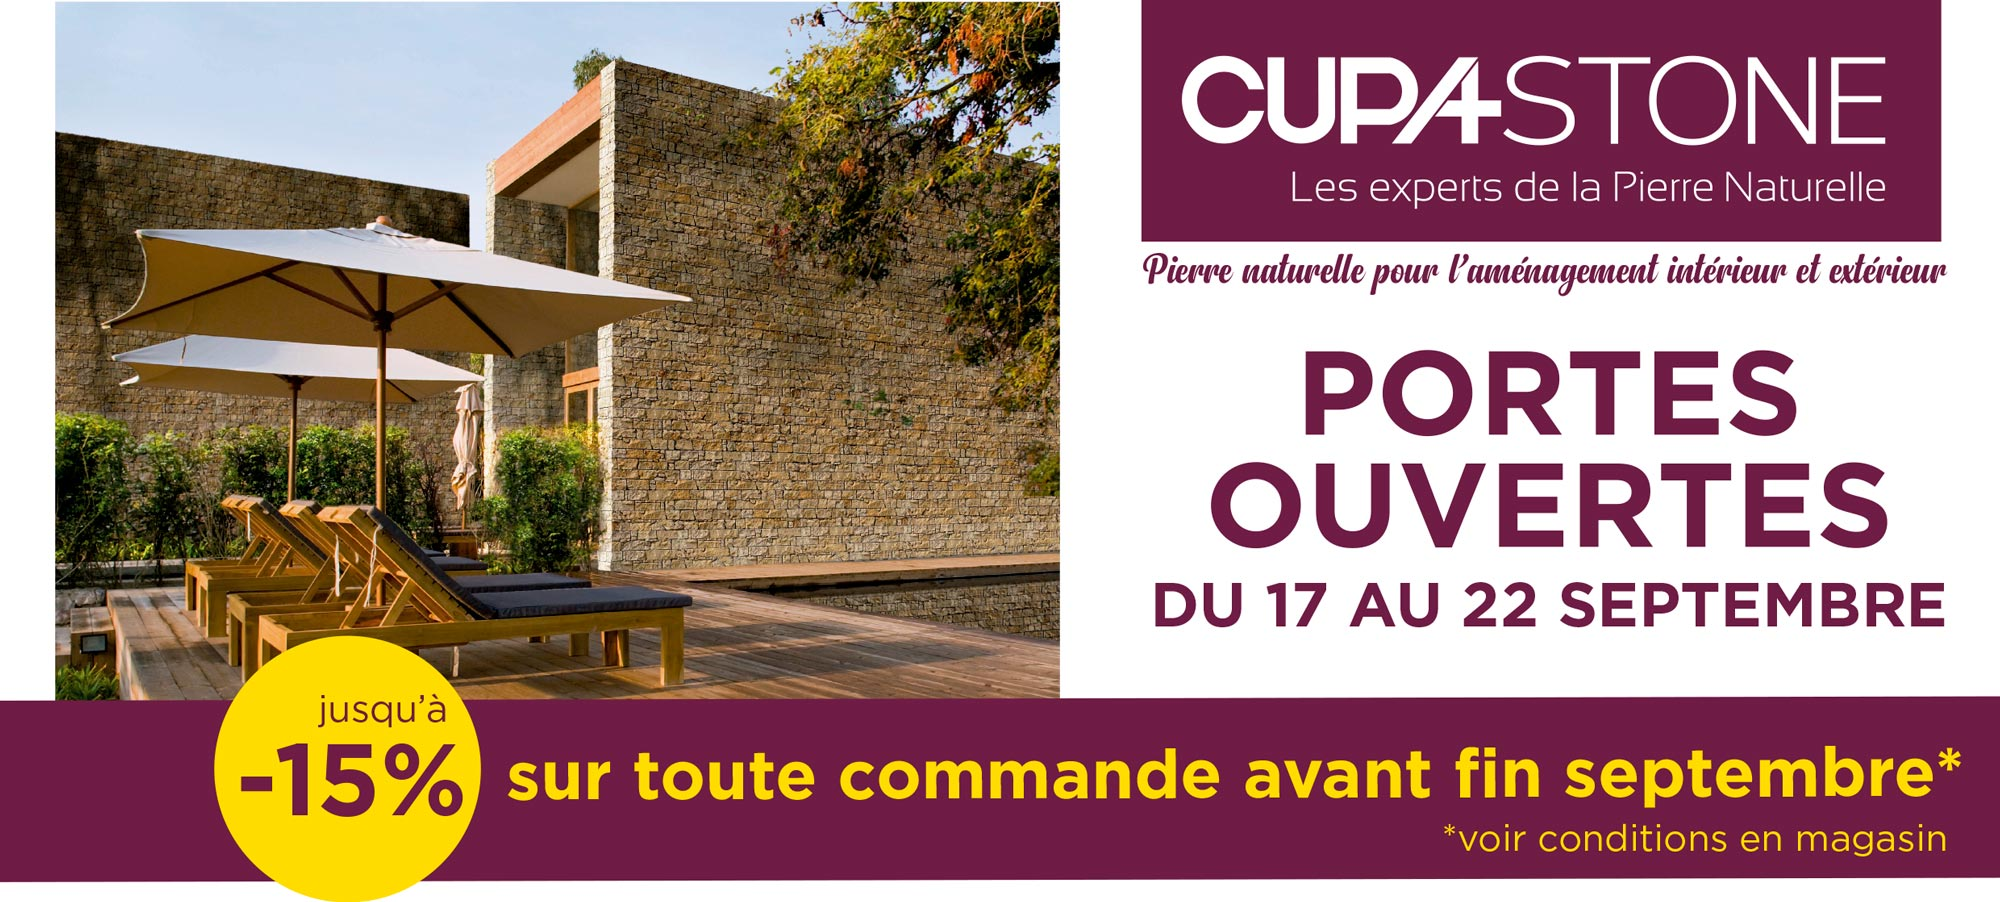 Portes ouvertes CUPA STONE France